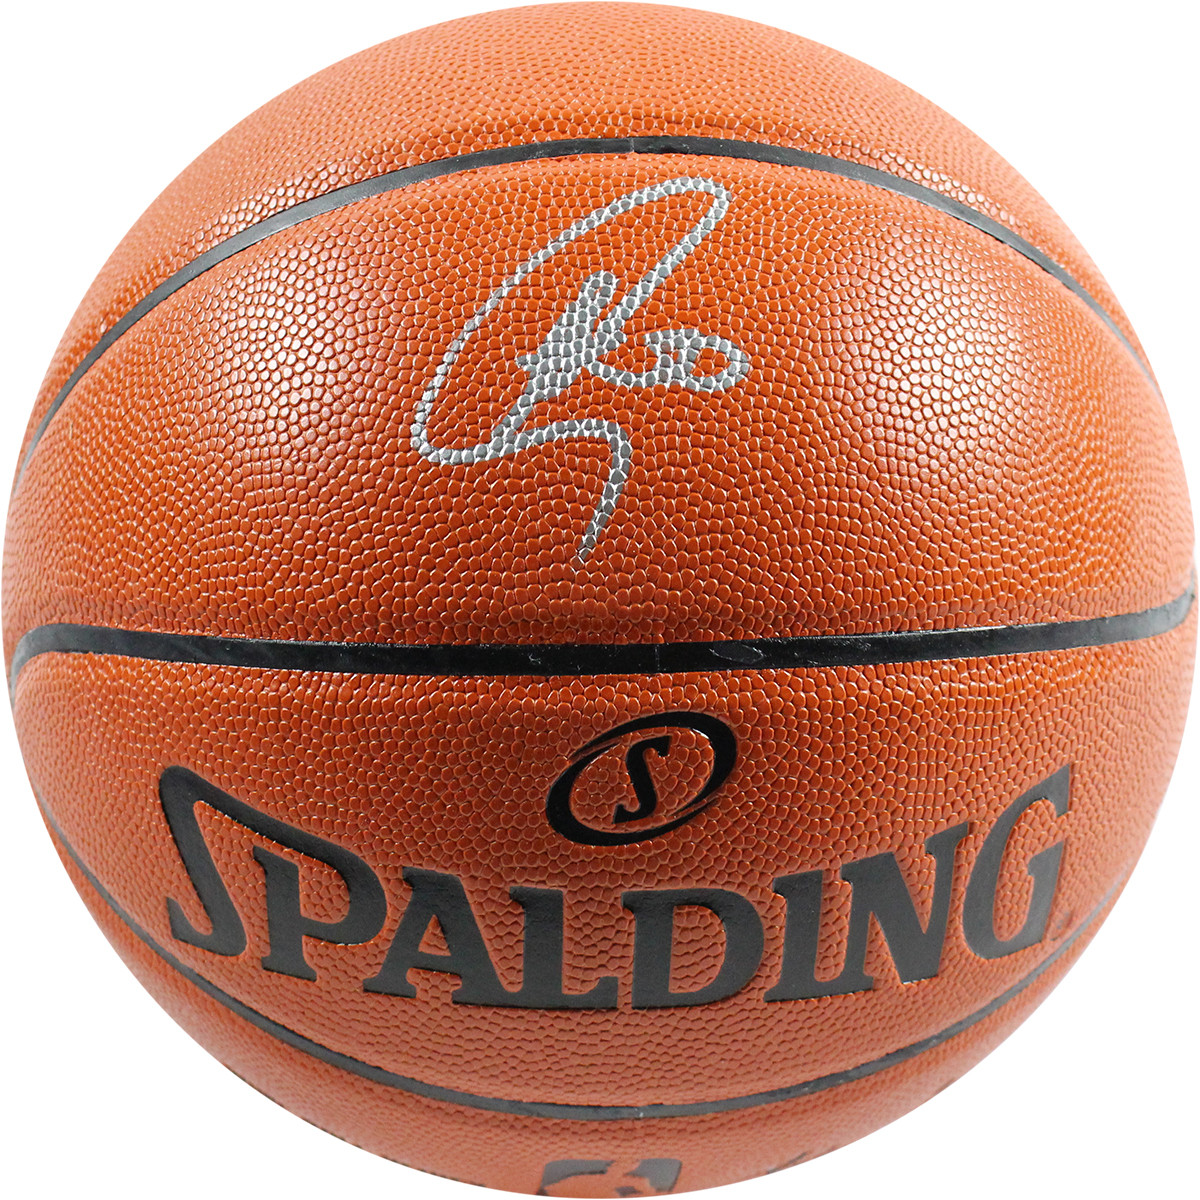 Stephen Curry Signed I/O Basketball (Fanatics Auth)